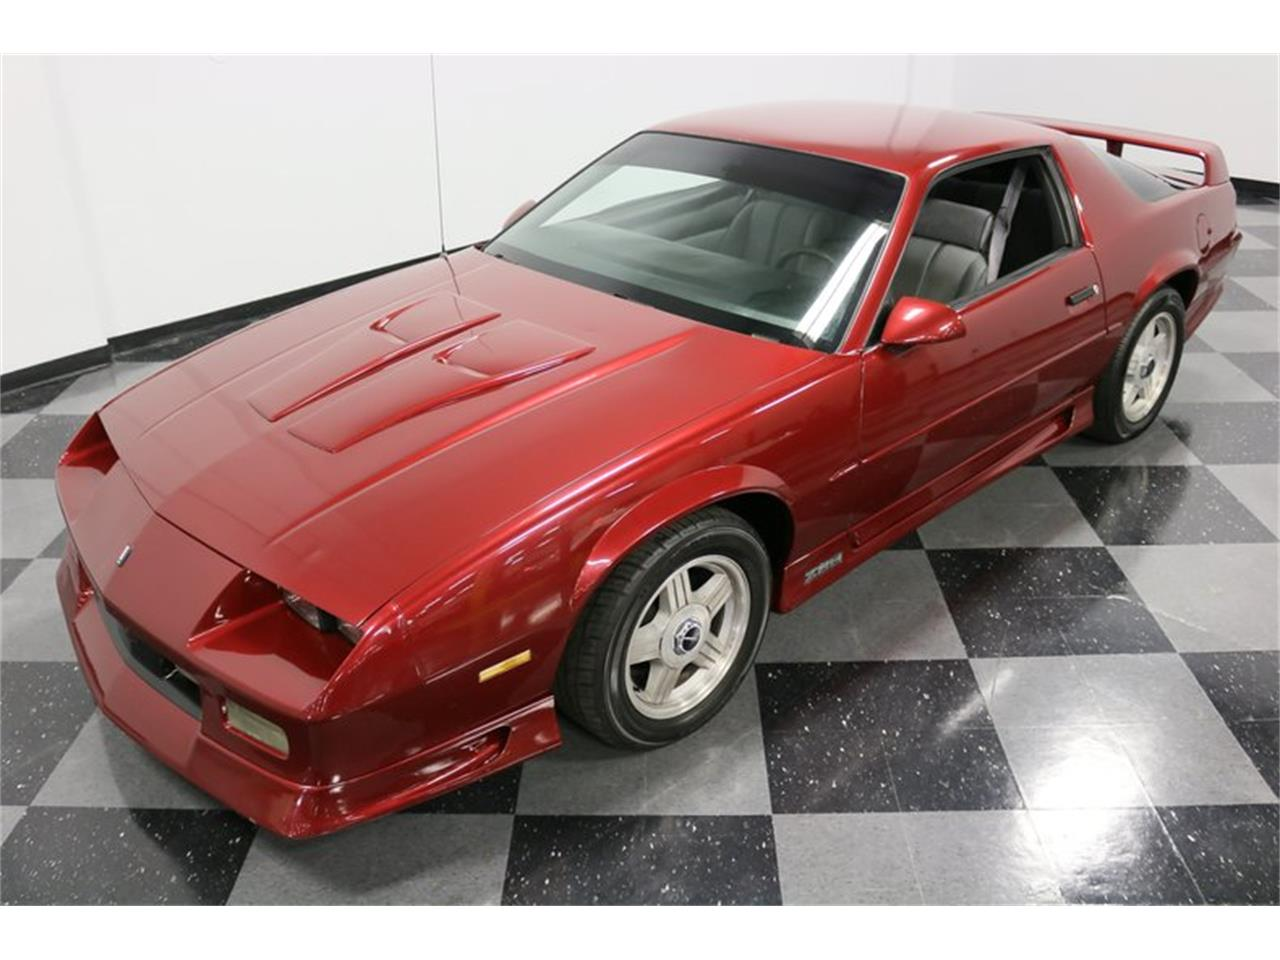 Large Picture of 1991 Chevrolet Camaro located in Texas Offered by Streetside Classics - Dallas / Fort Worth - PBLJ